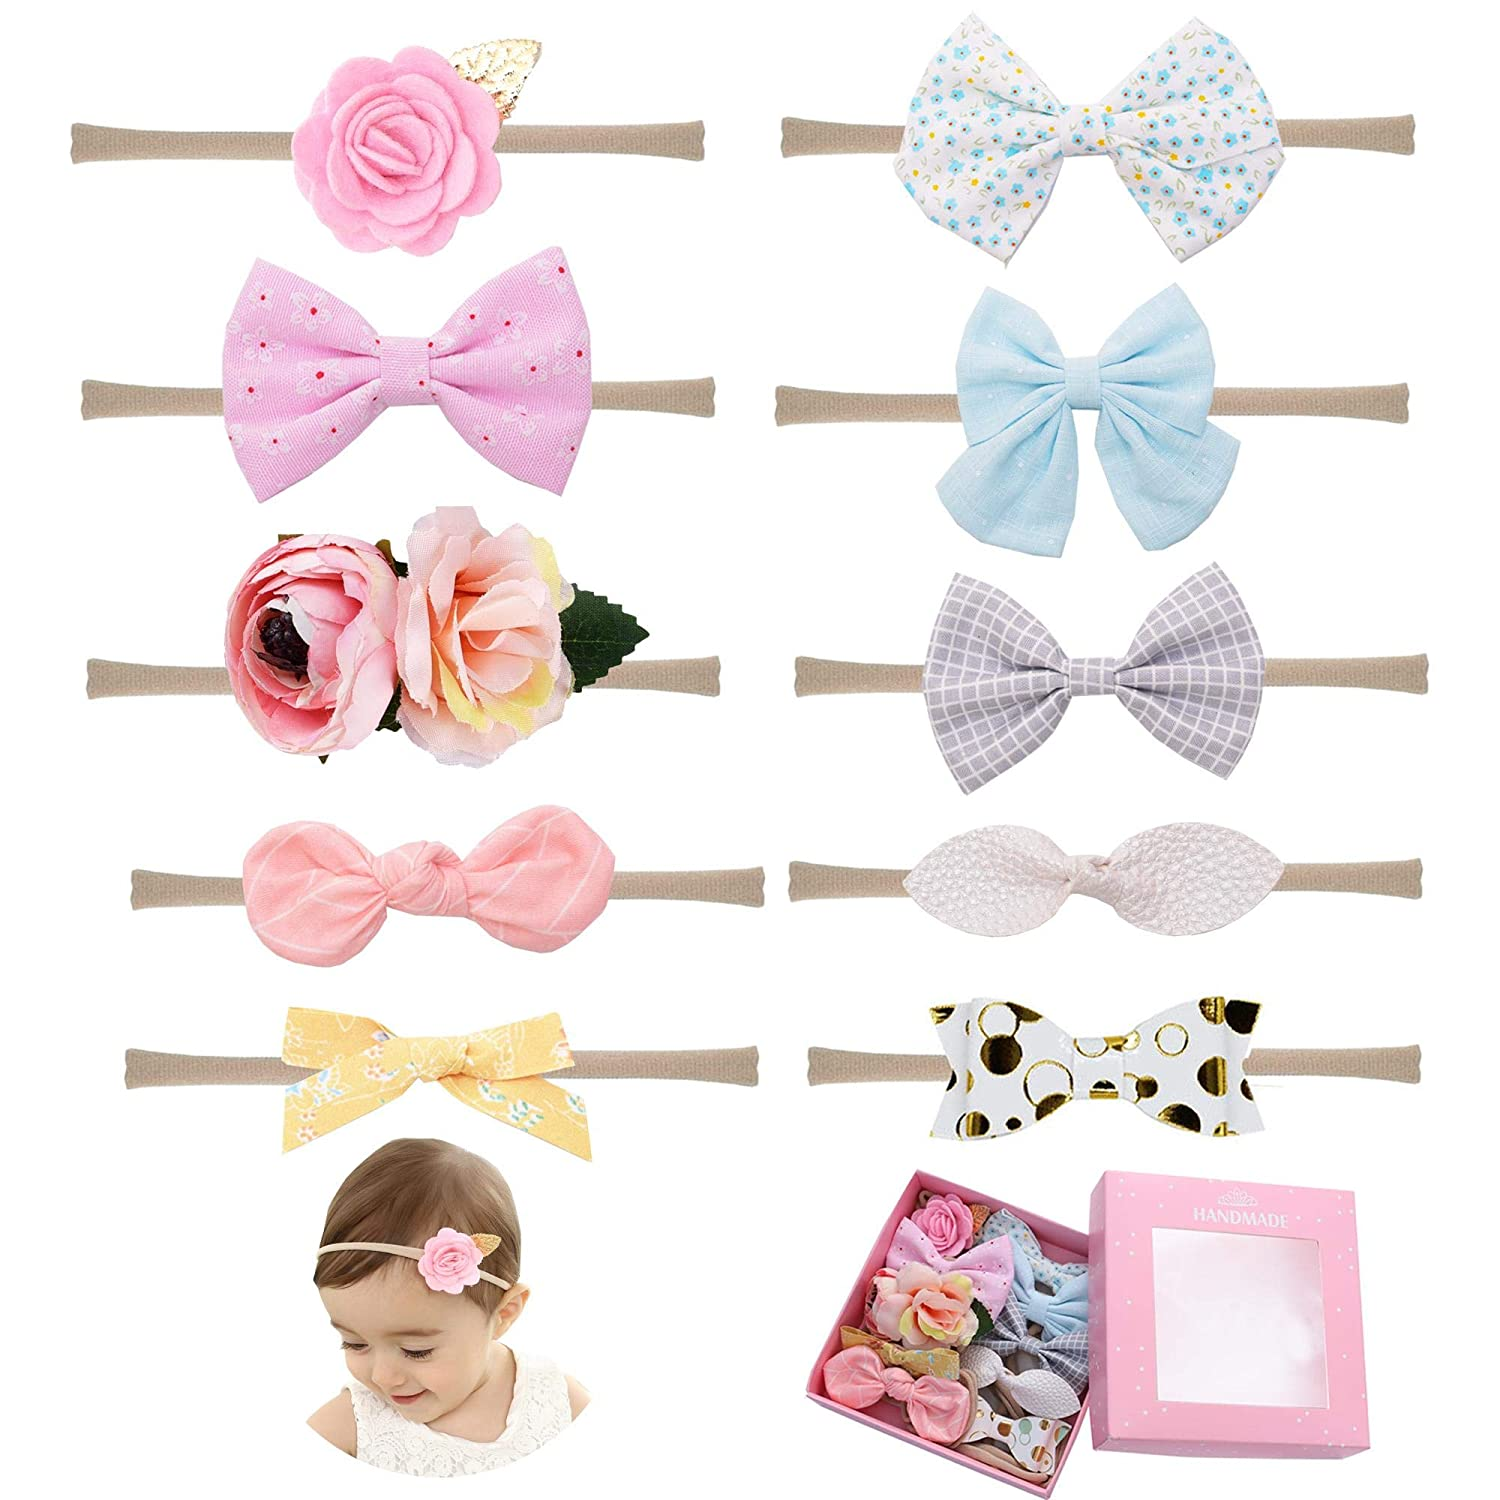 Girl's Accessories 4 Inch Top Rhinestone Softball Baseball Hairpins Leather Flower Hairclips Handmade Women Girls Hair Bows Strong Resistance To Heat And Hard Wearing